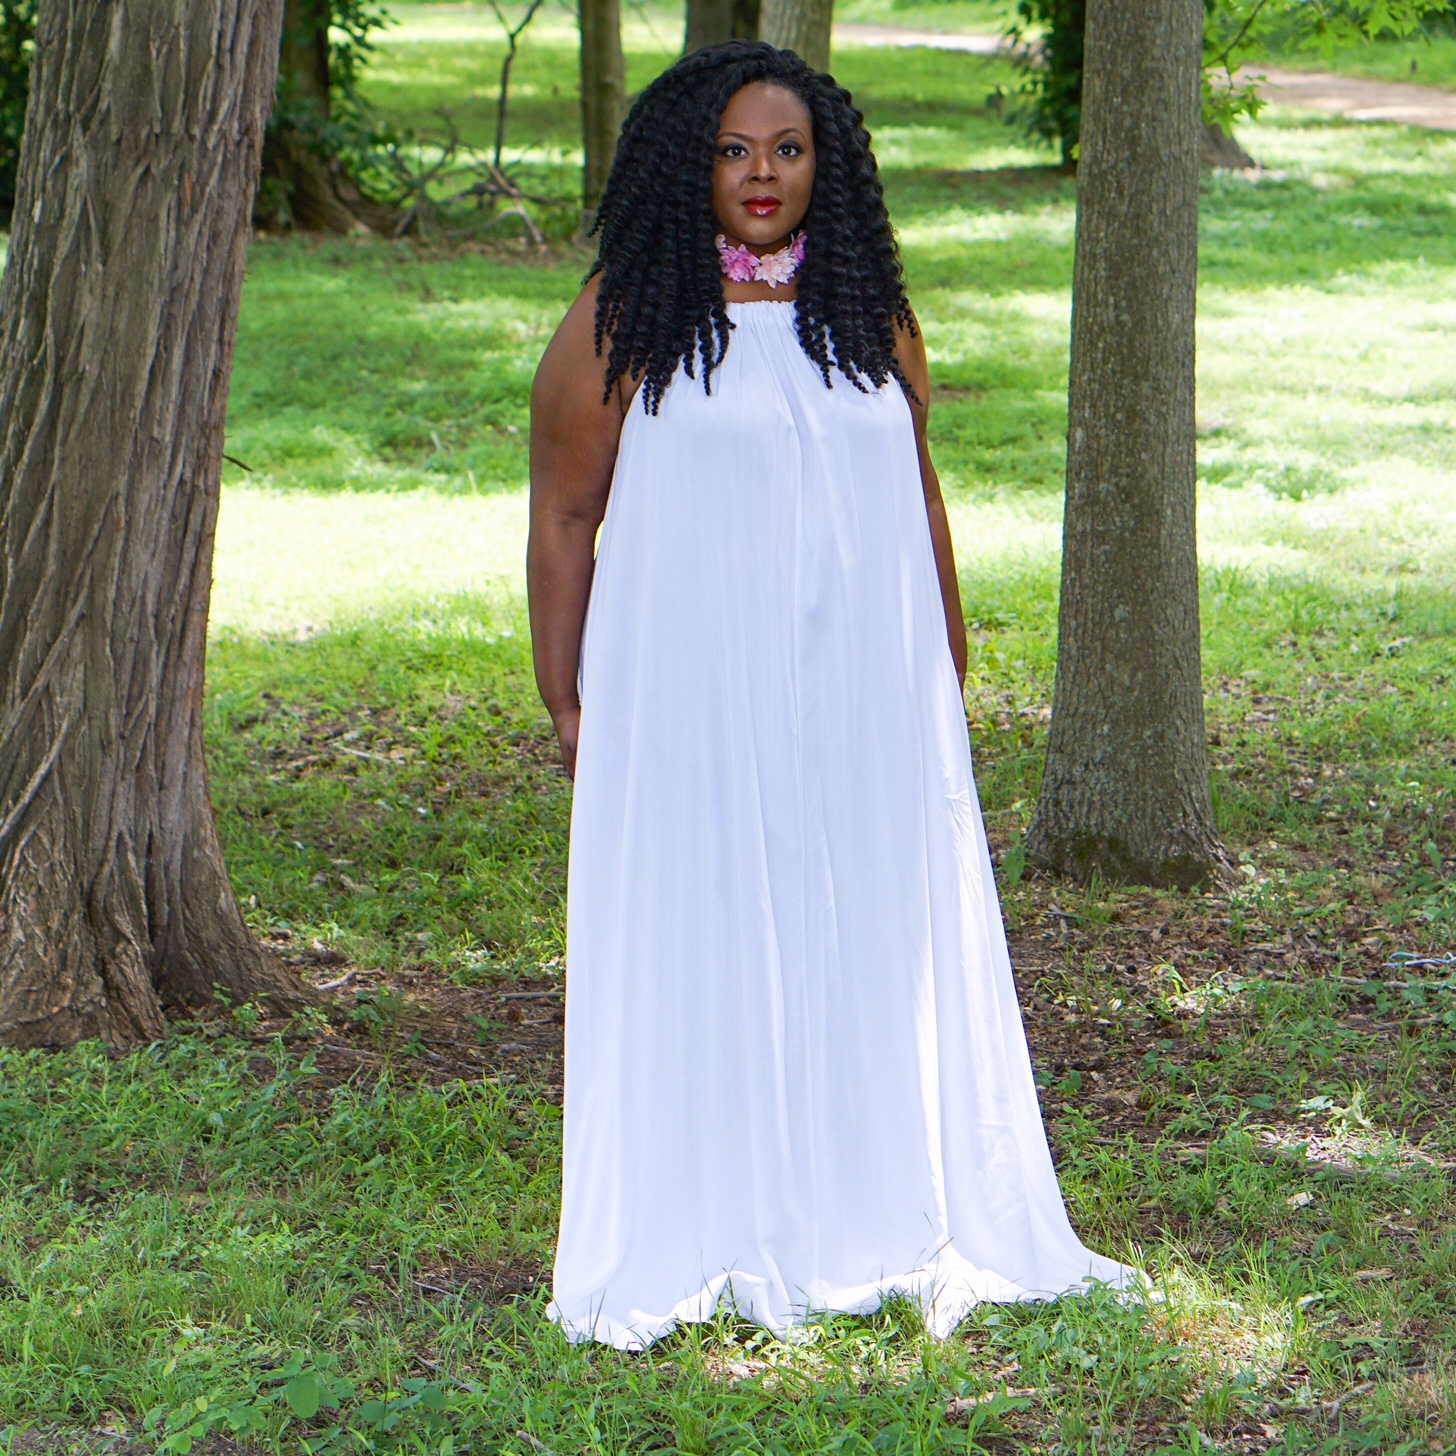 plus size white maxidress, all white dress, plus size white dress, white maxidresses